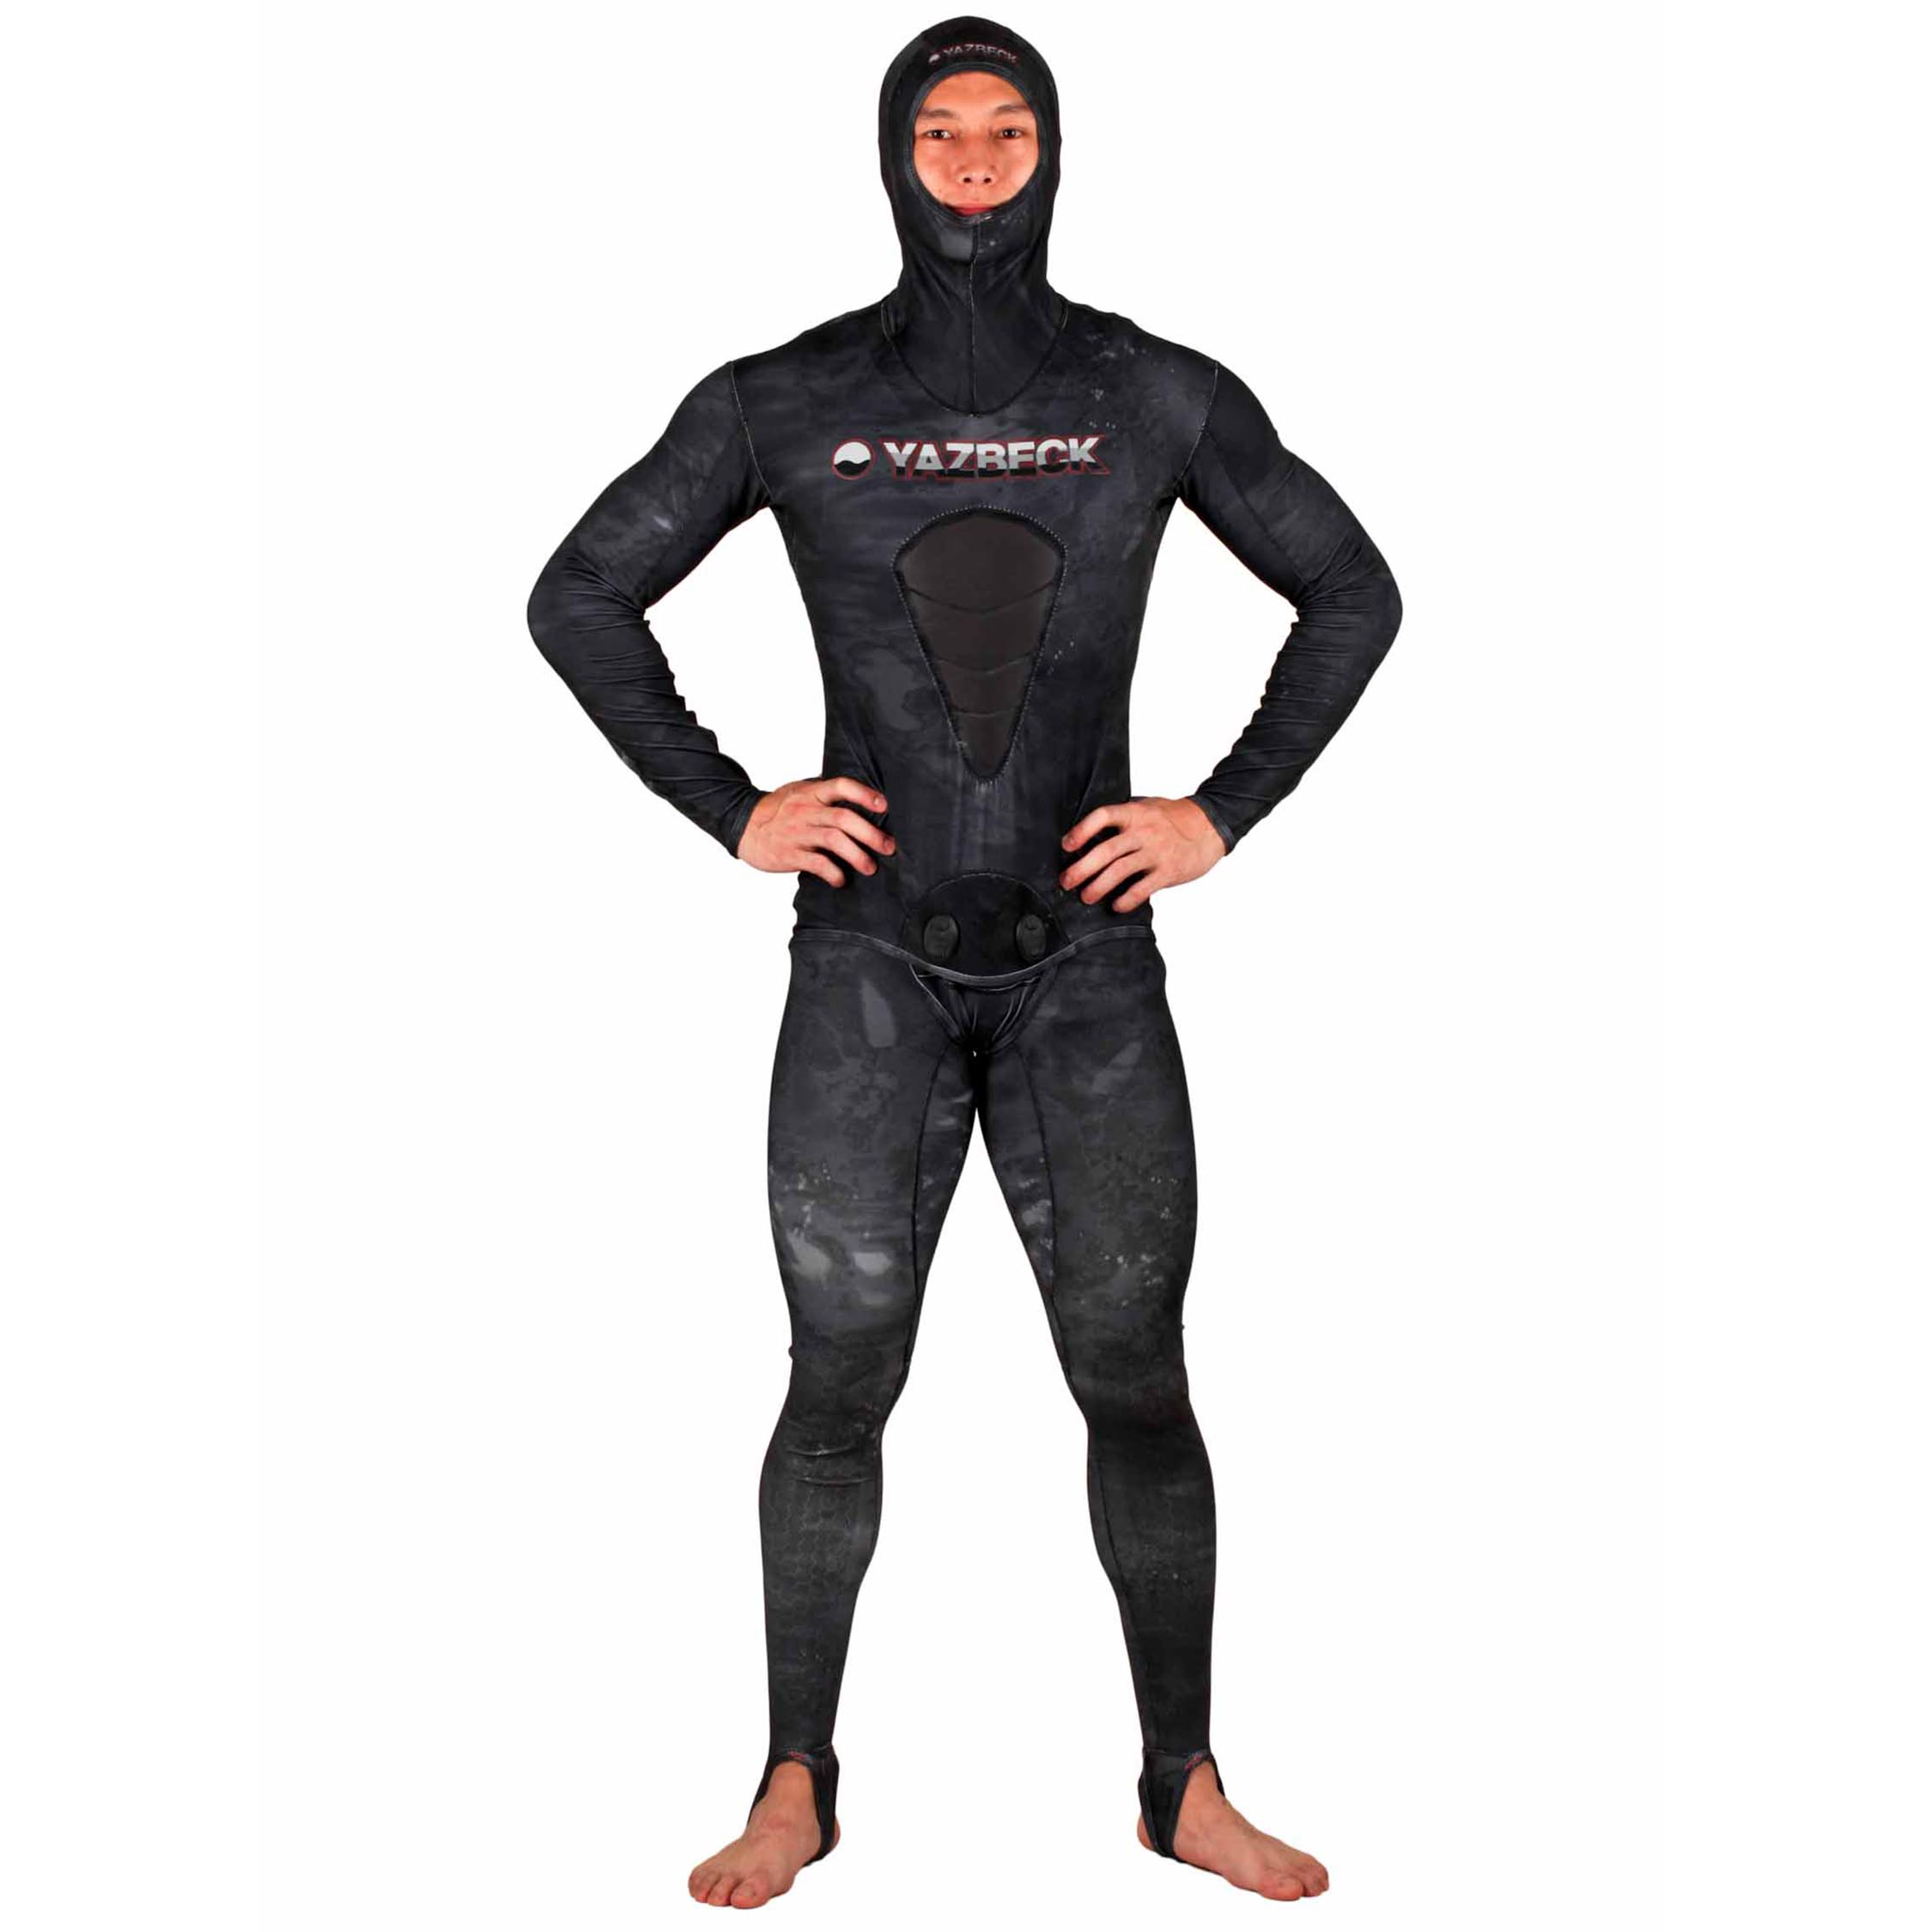 Yazbeck-Carbone-05mm-Spearfishing-Freediving-RGCA2PC